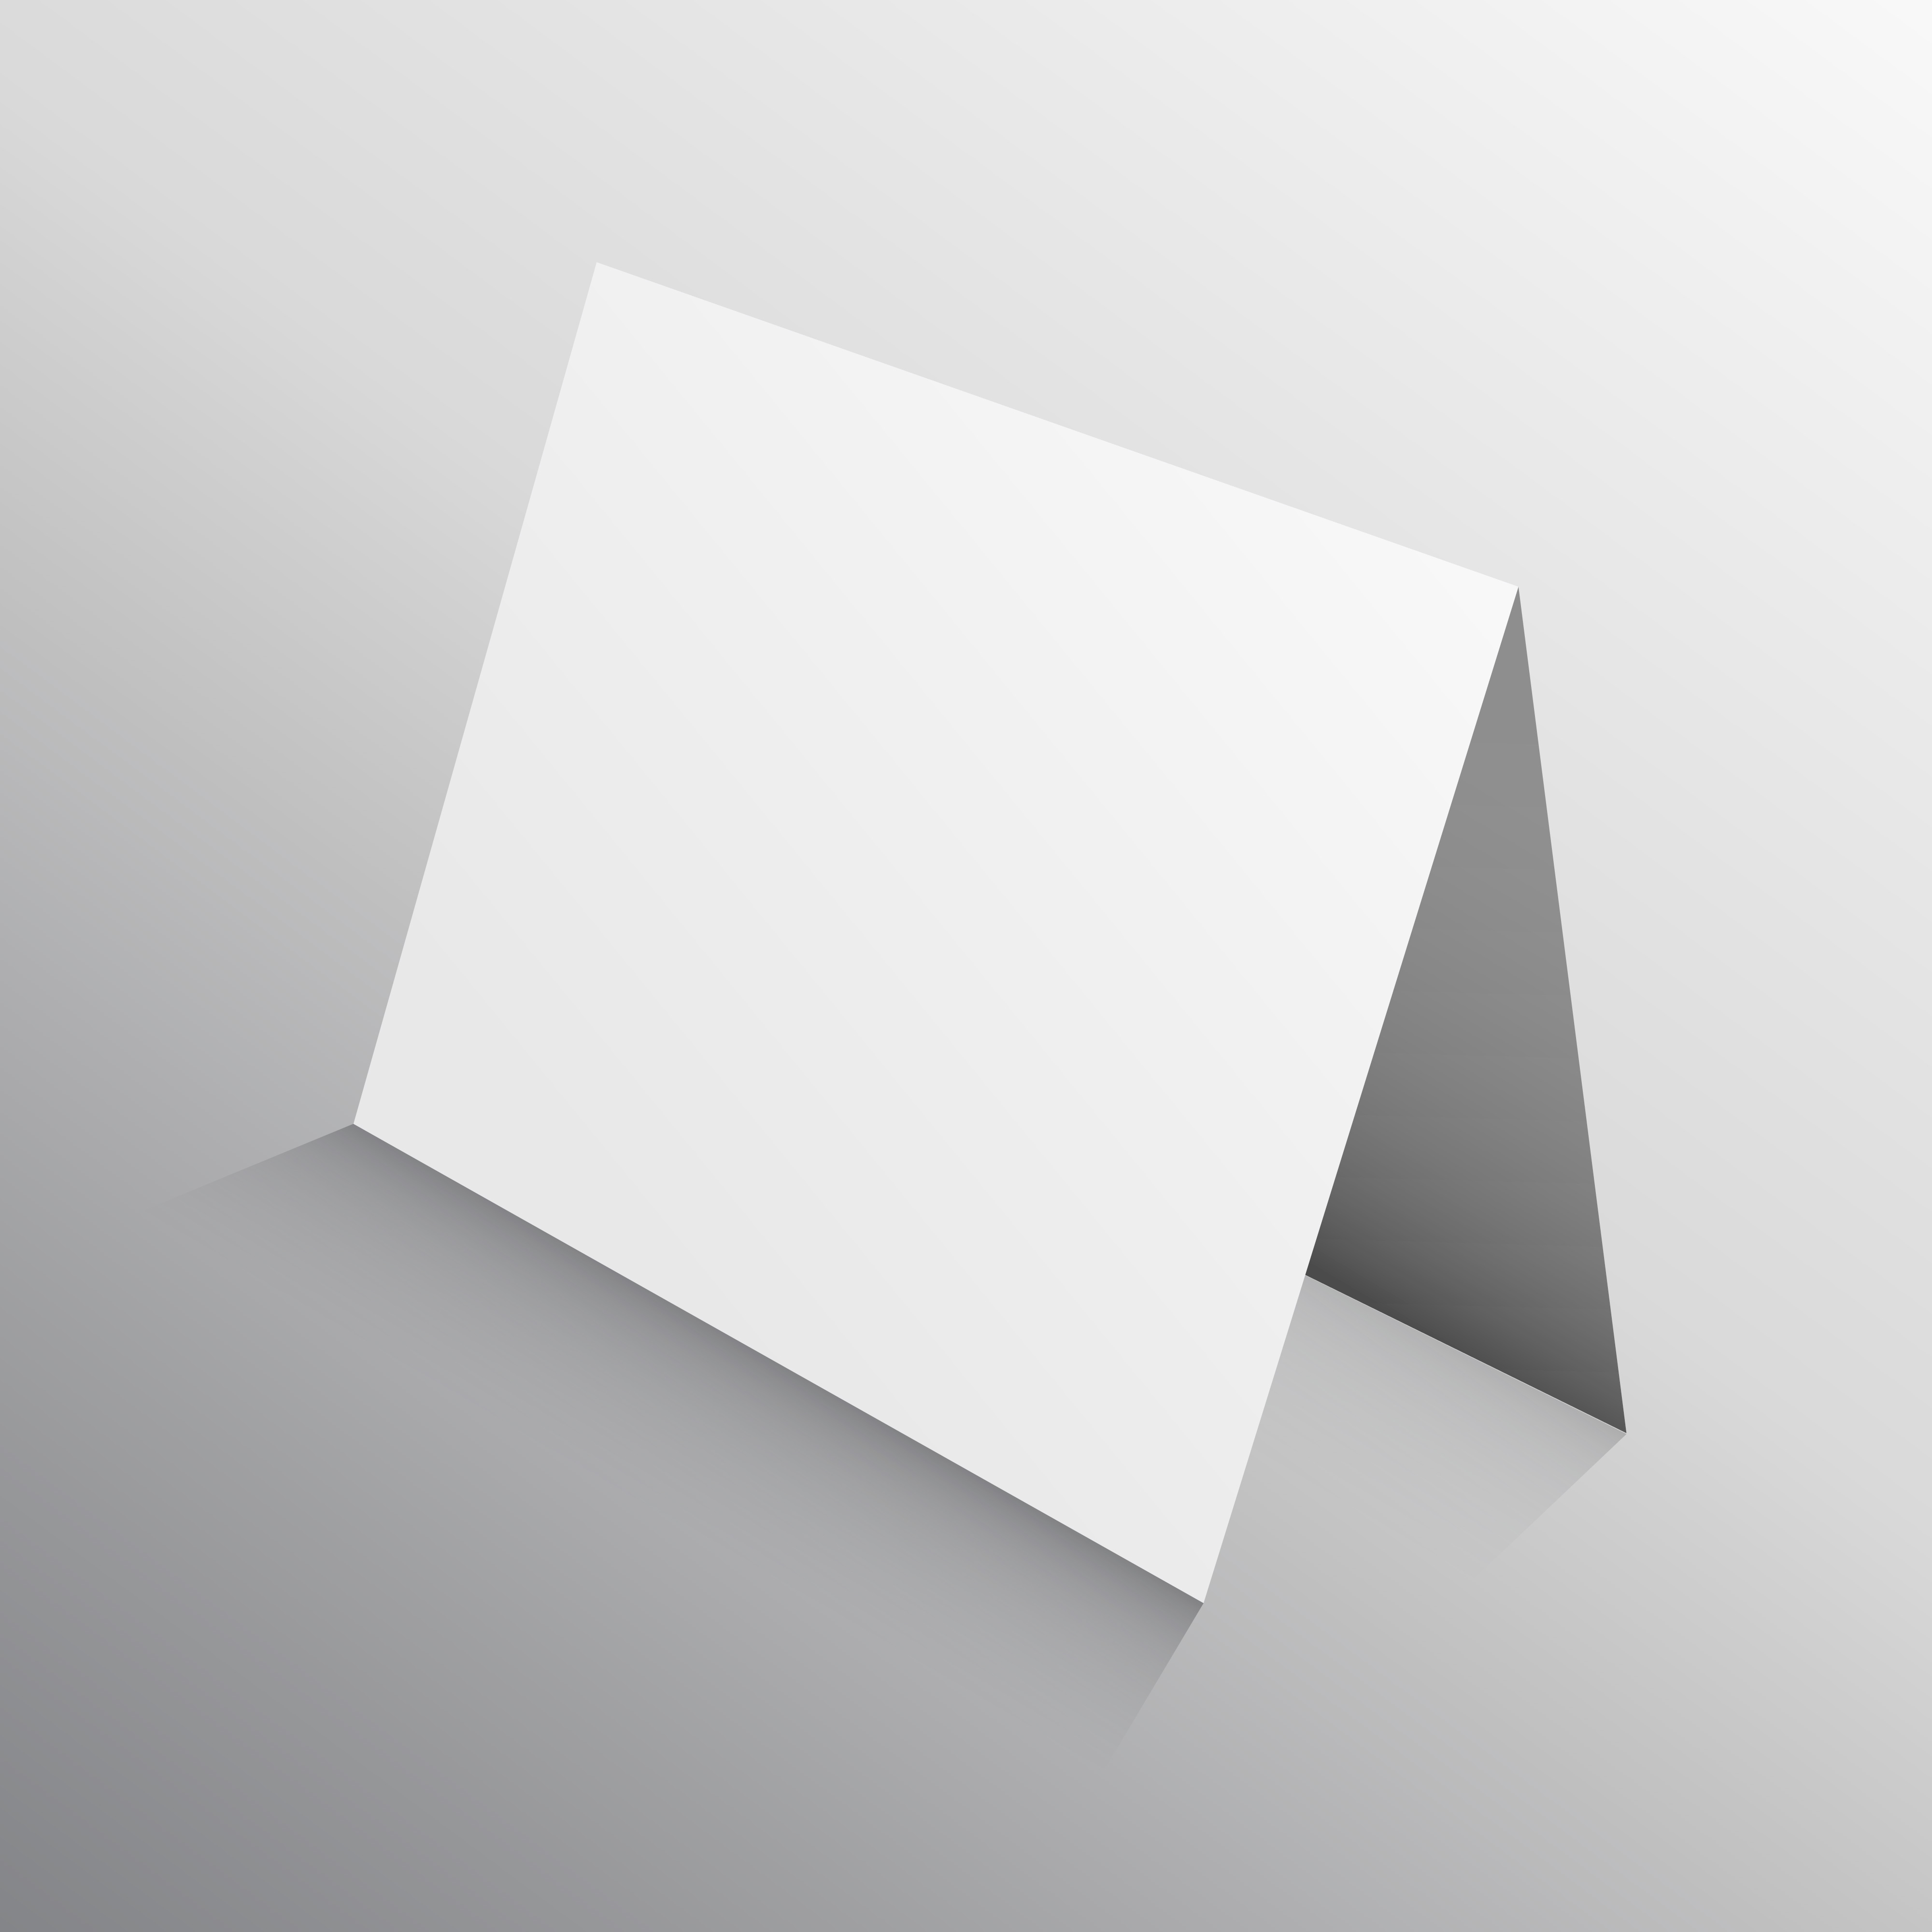 perspective folded paper card in 3d  mockup template